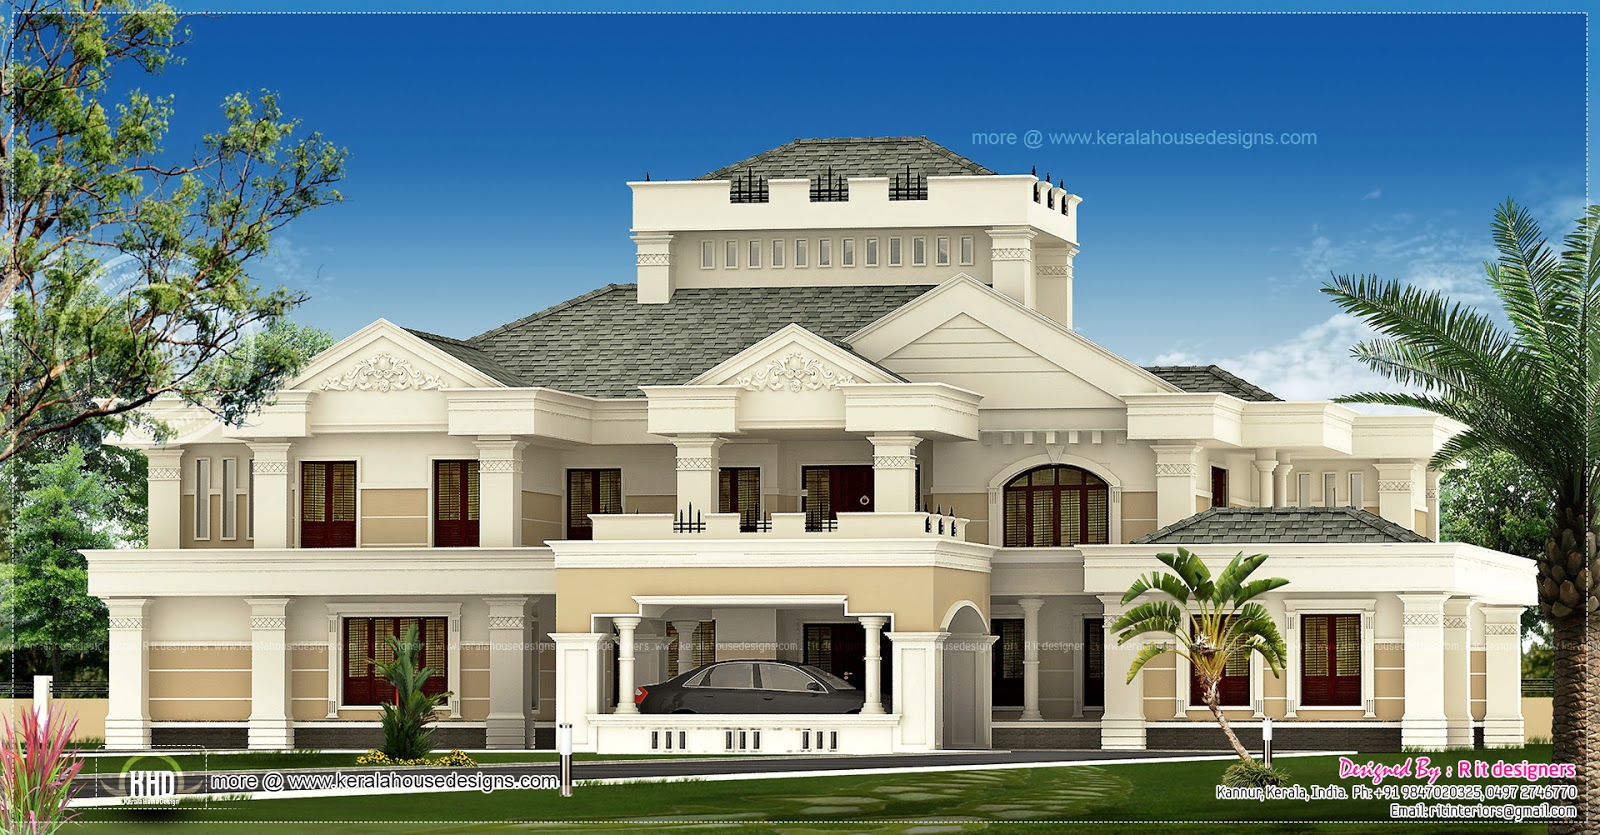 super luxury kerala house exterior house design plans. Black Bedroom Furniture Sets. Home Design Ideas